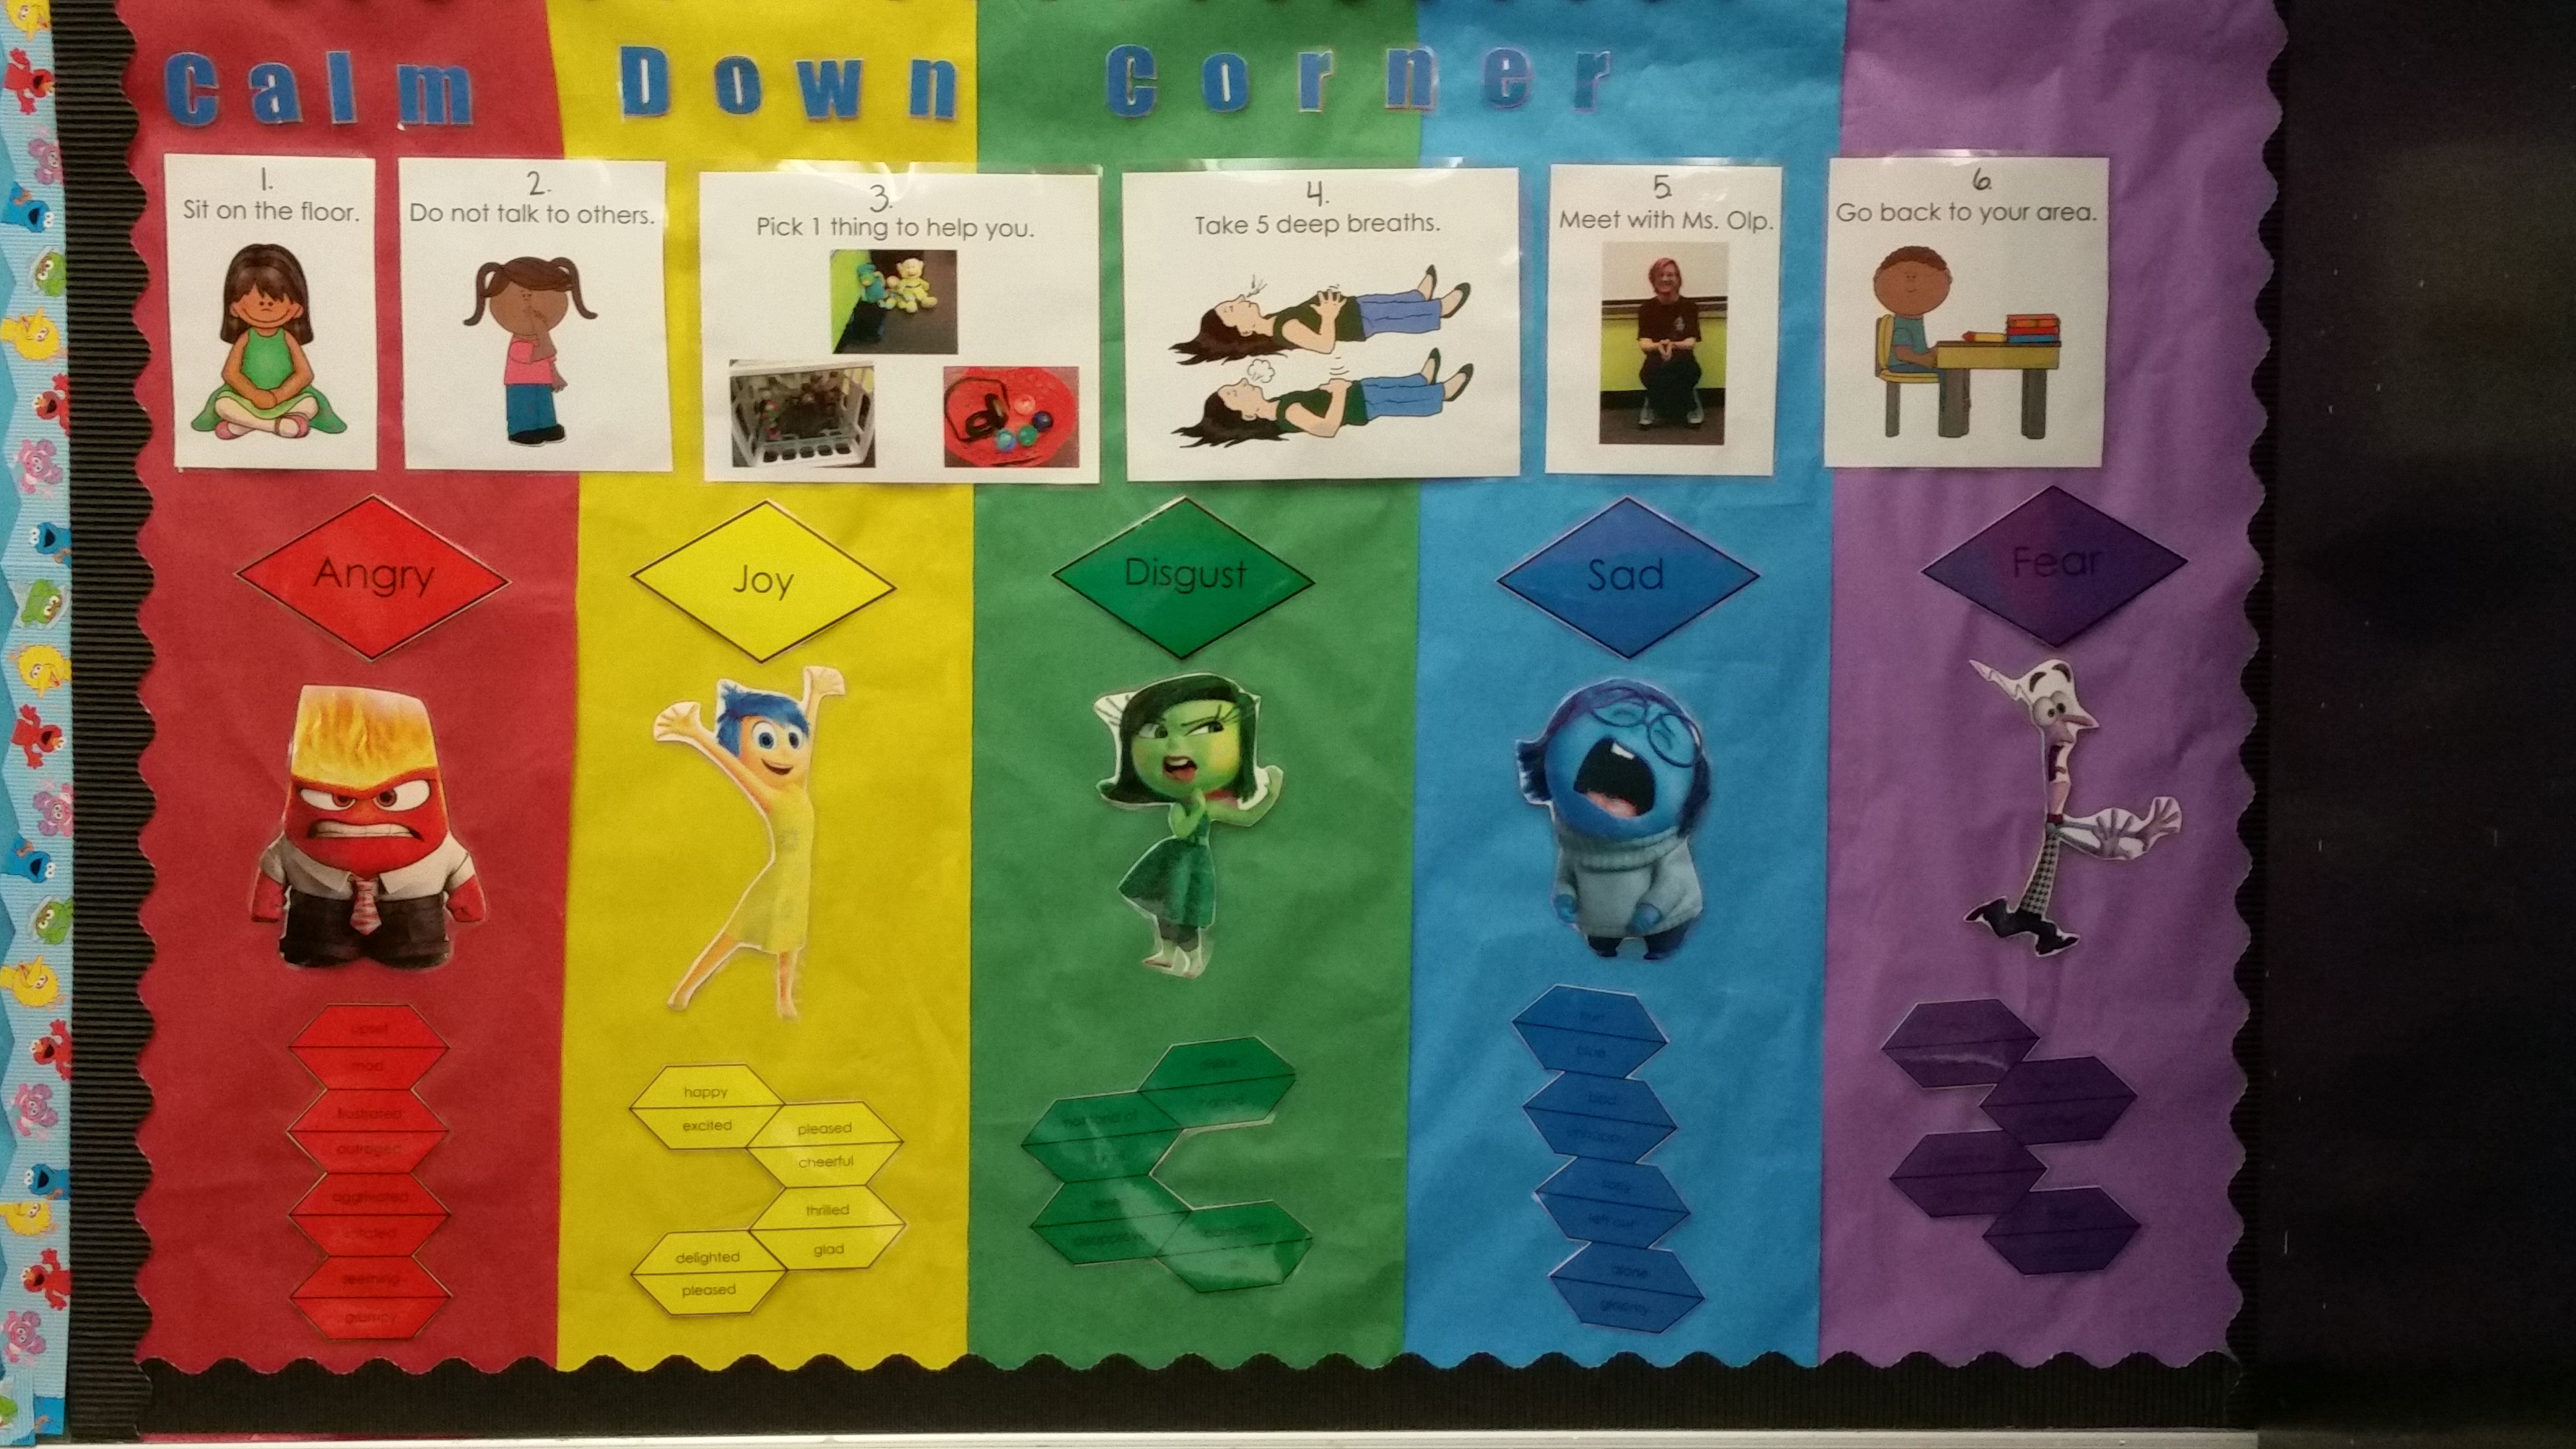 Calm Down Corner Board With Images